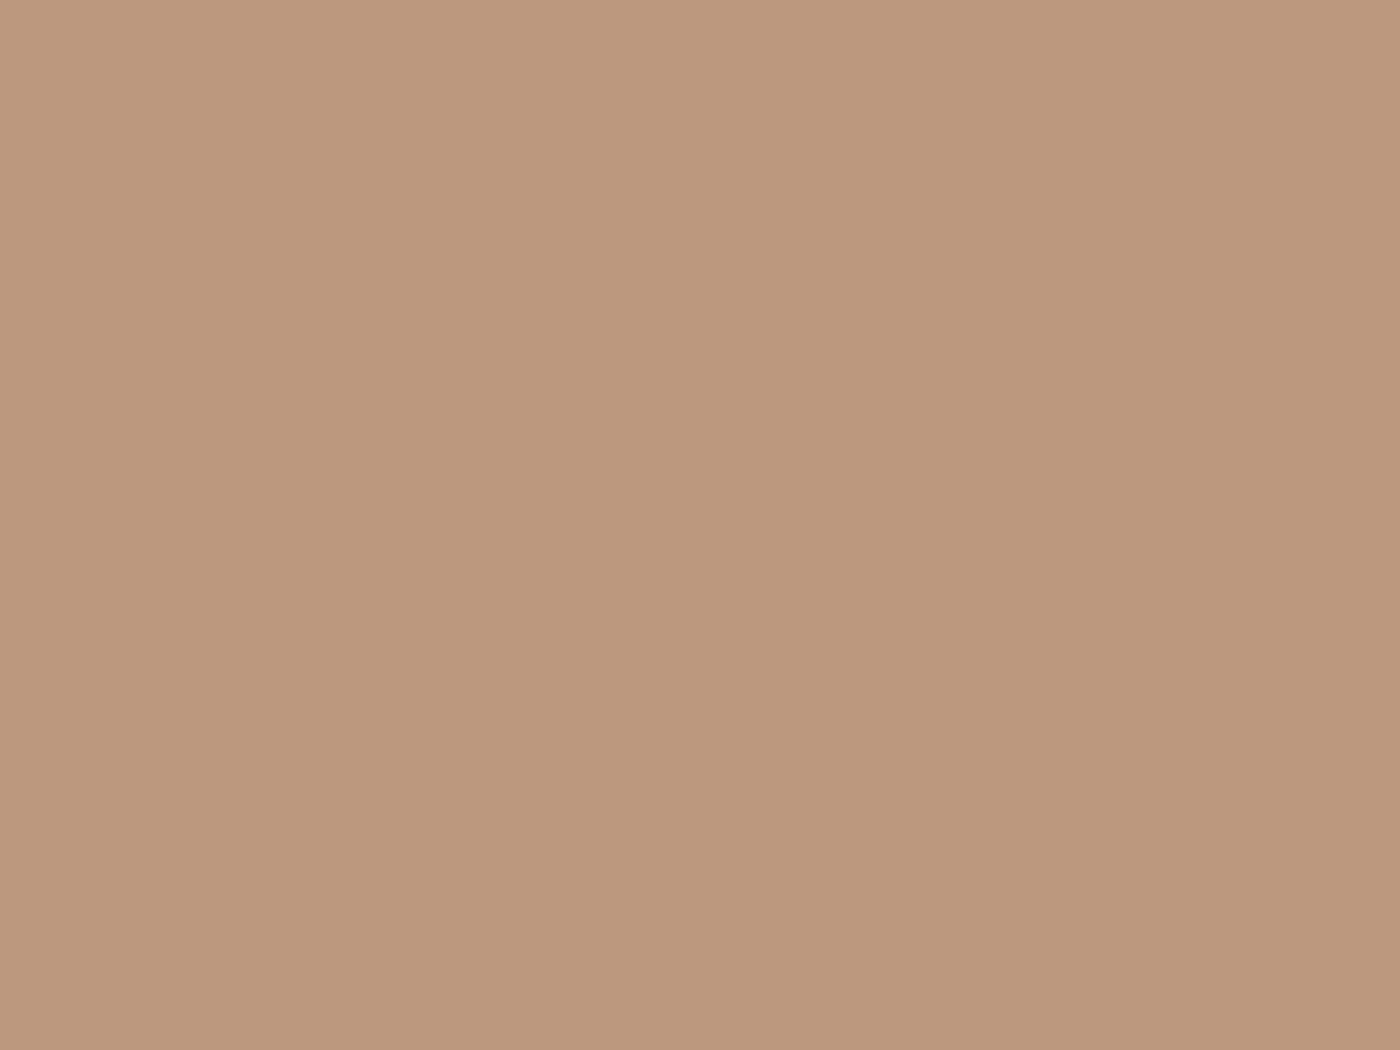 1400x1050 Pale Taupe Solid Color Background